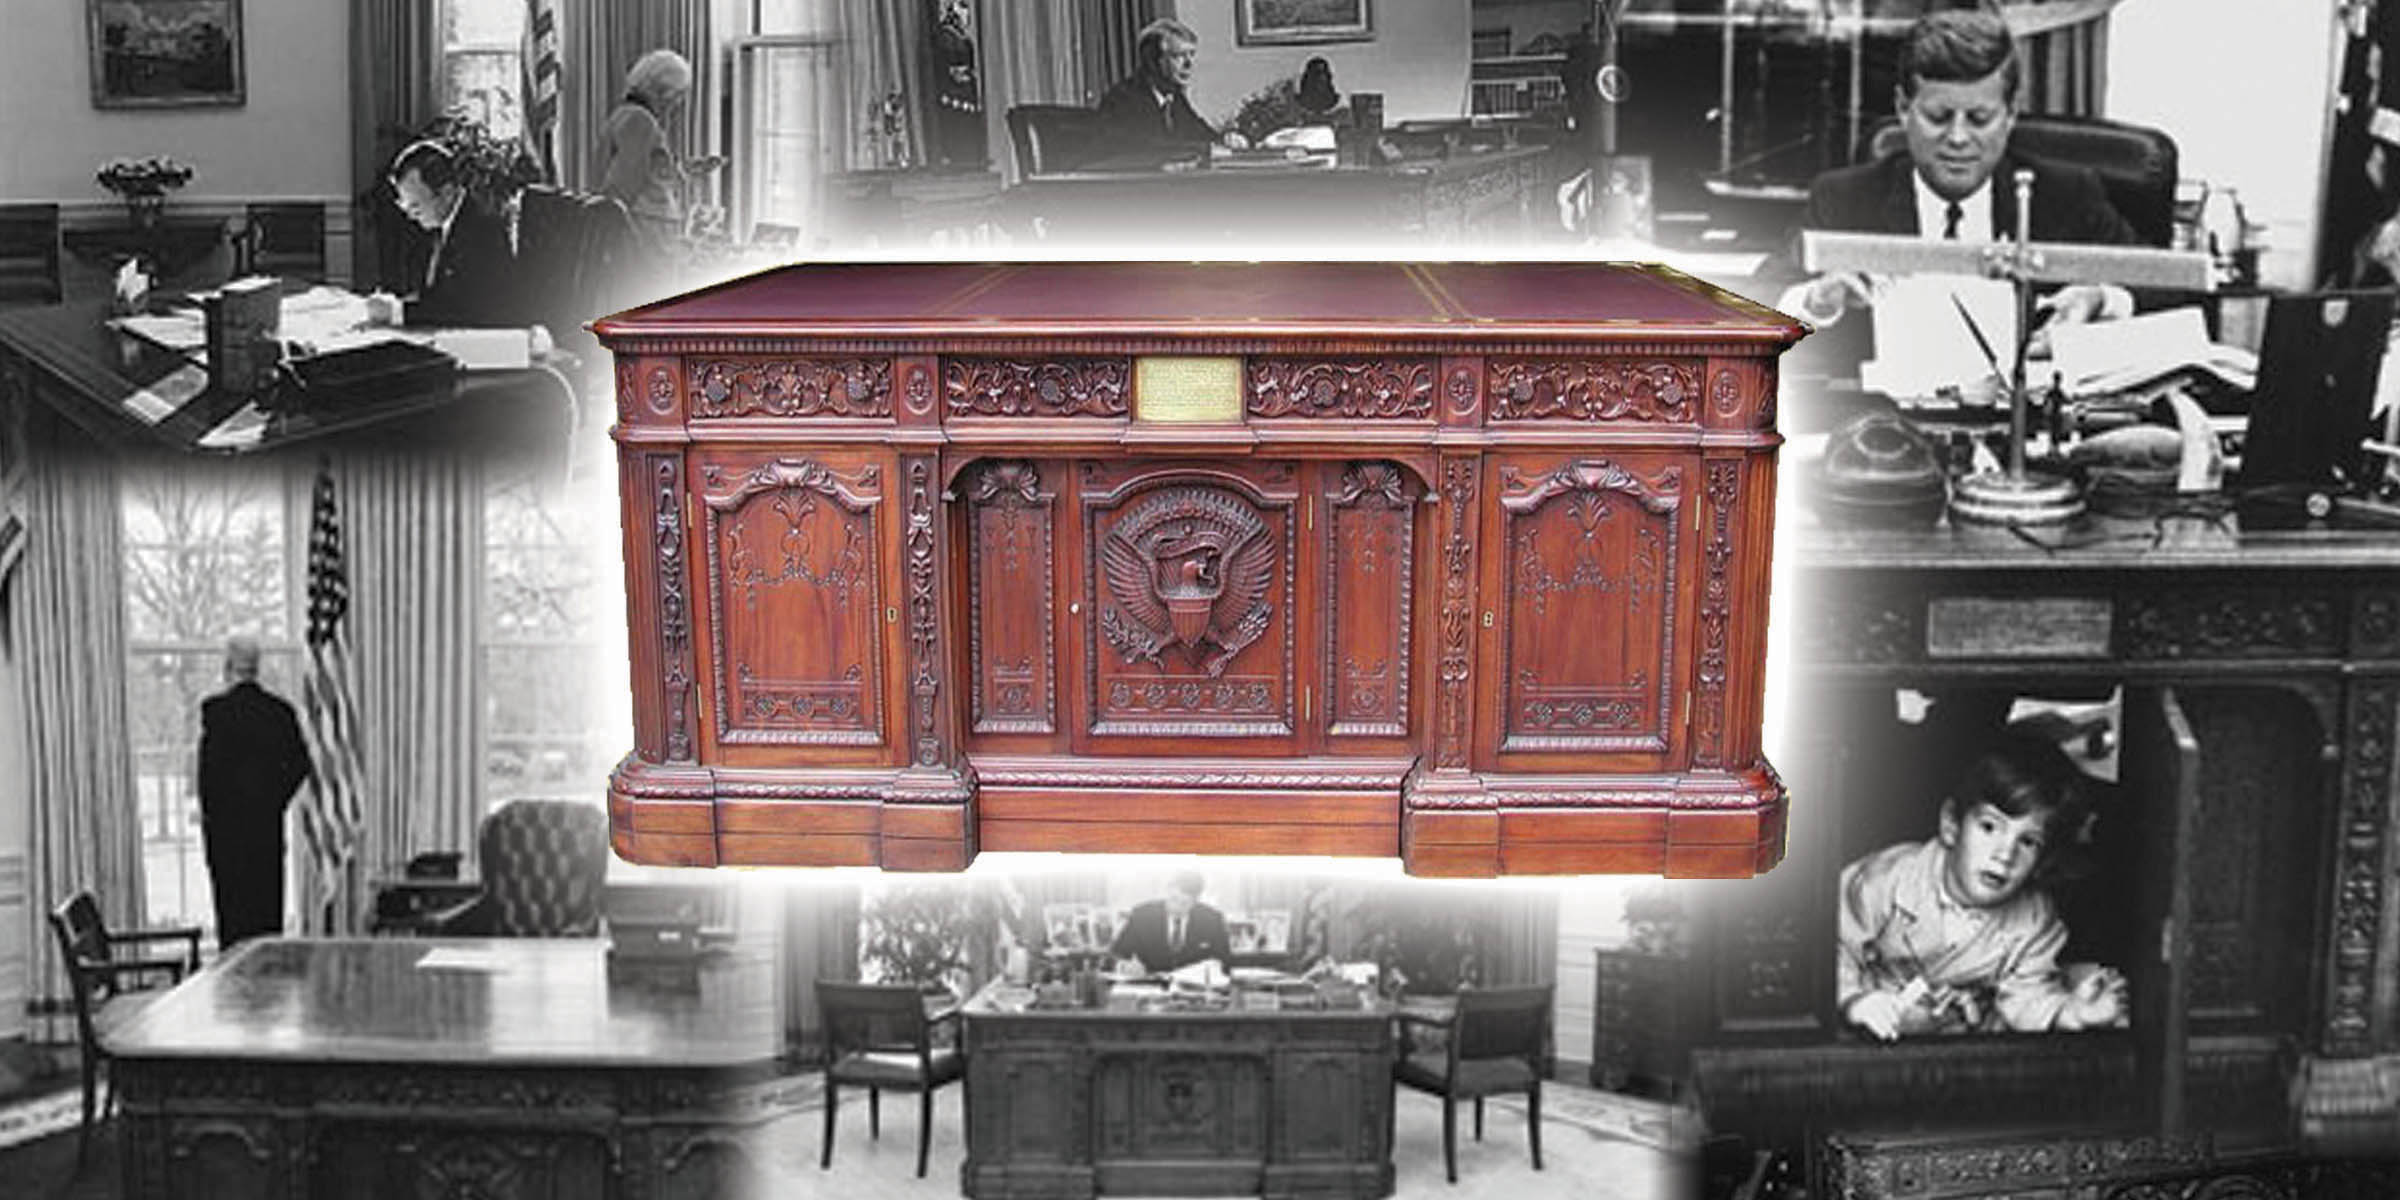 lot detail white house oval office resolute desk